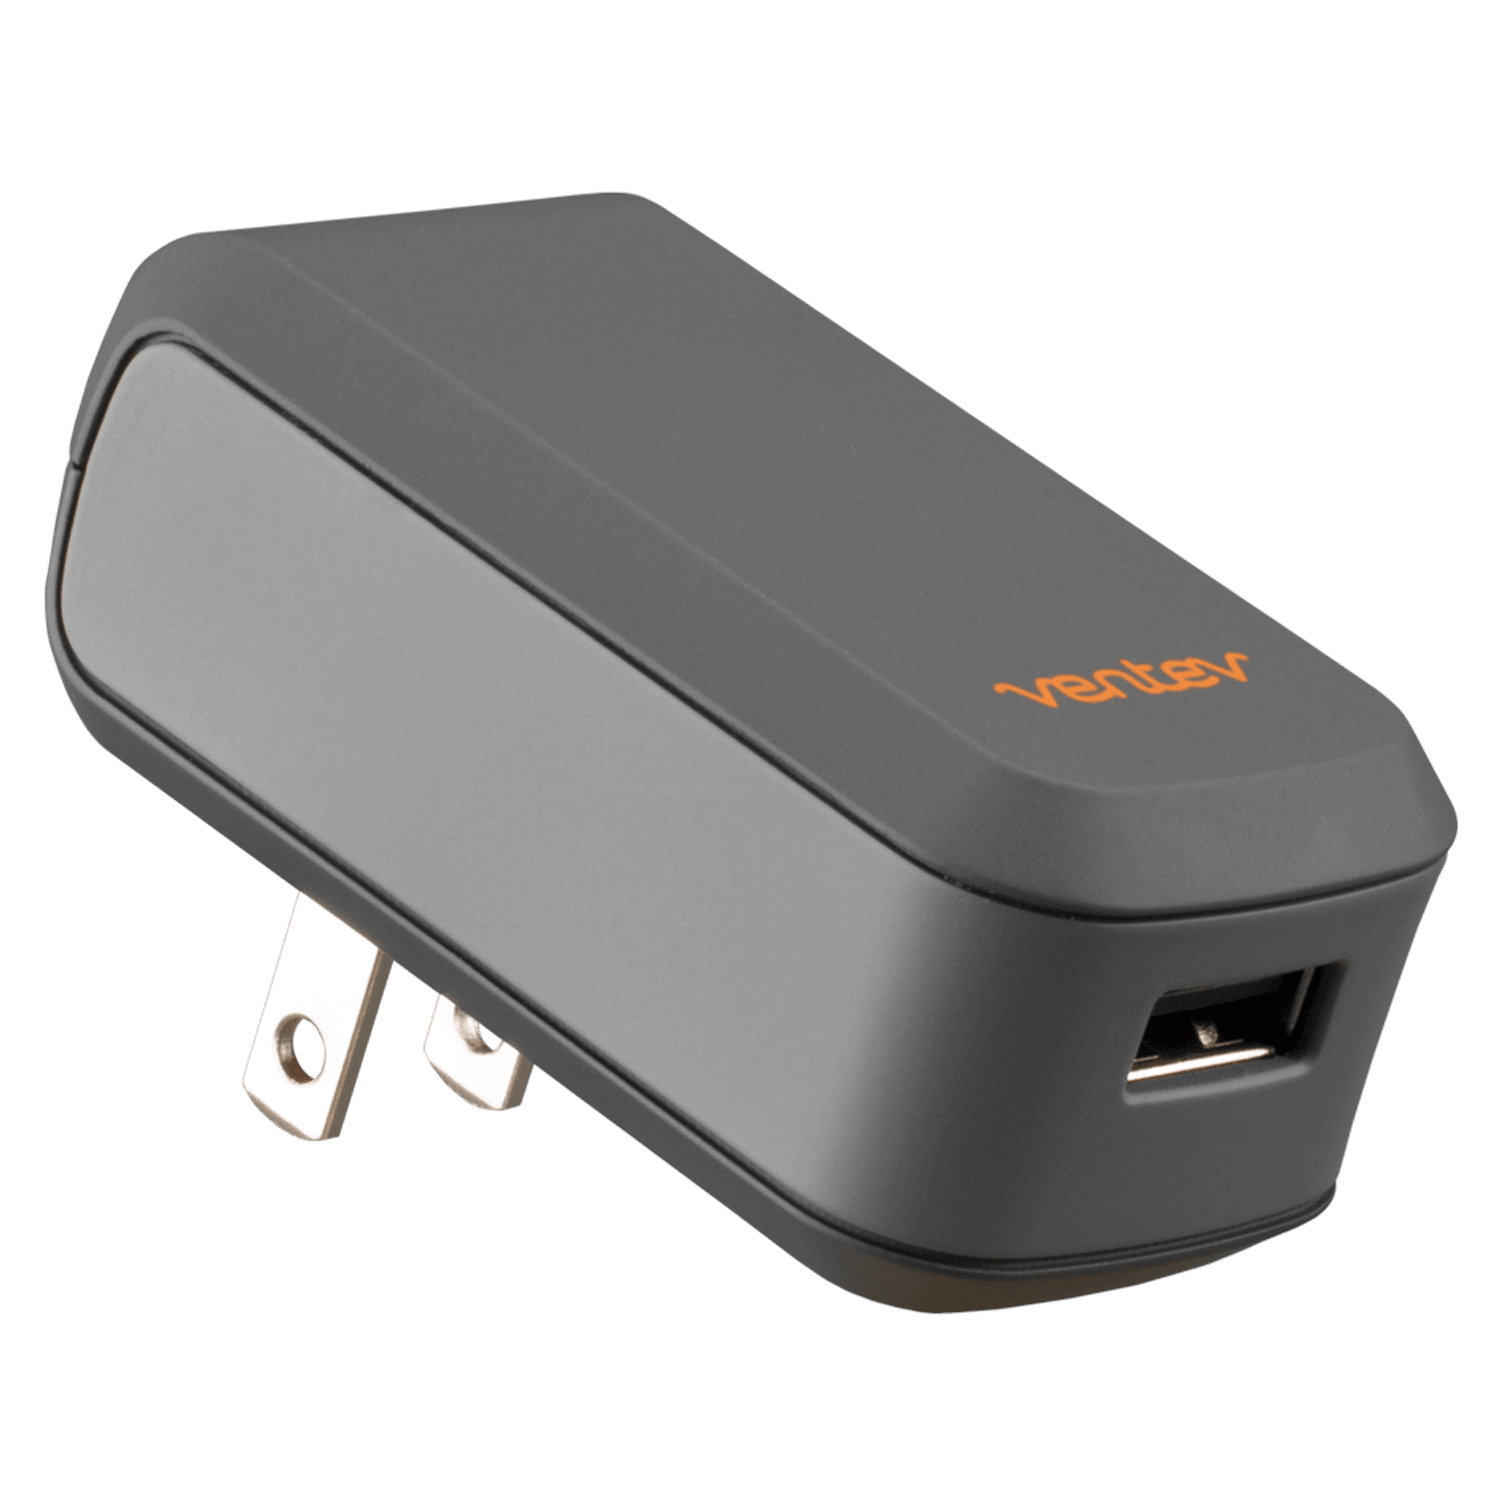 Wholesale cell phone accessory Ventev - 12W wallport r1240 Wall Charger and USB A to Apple